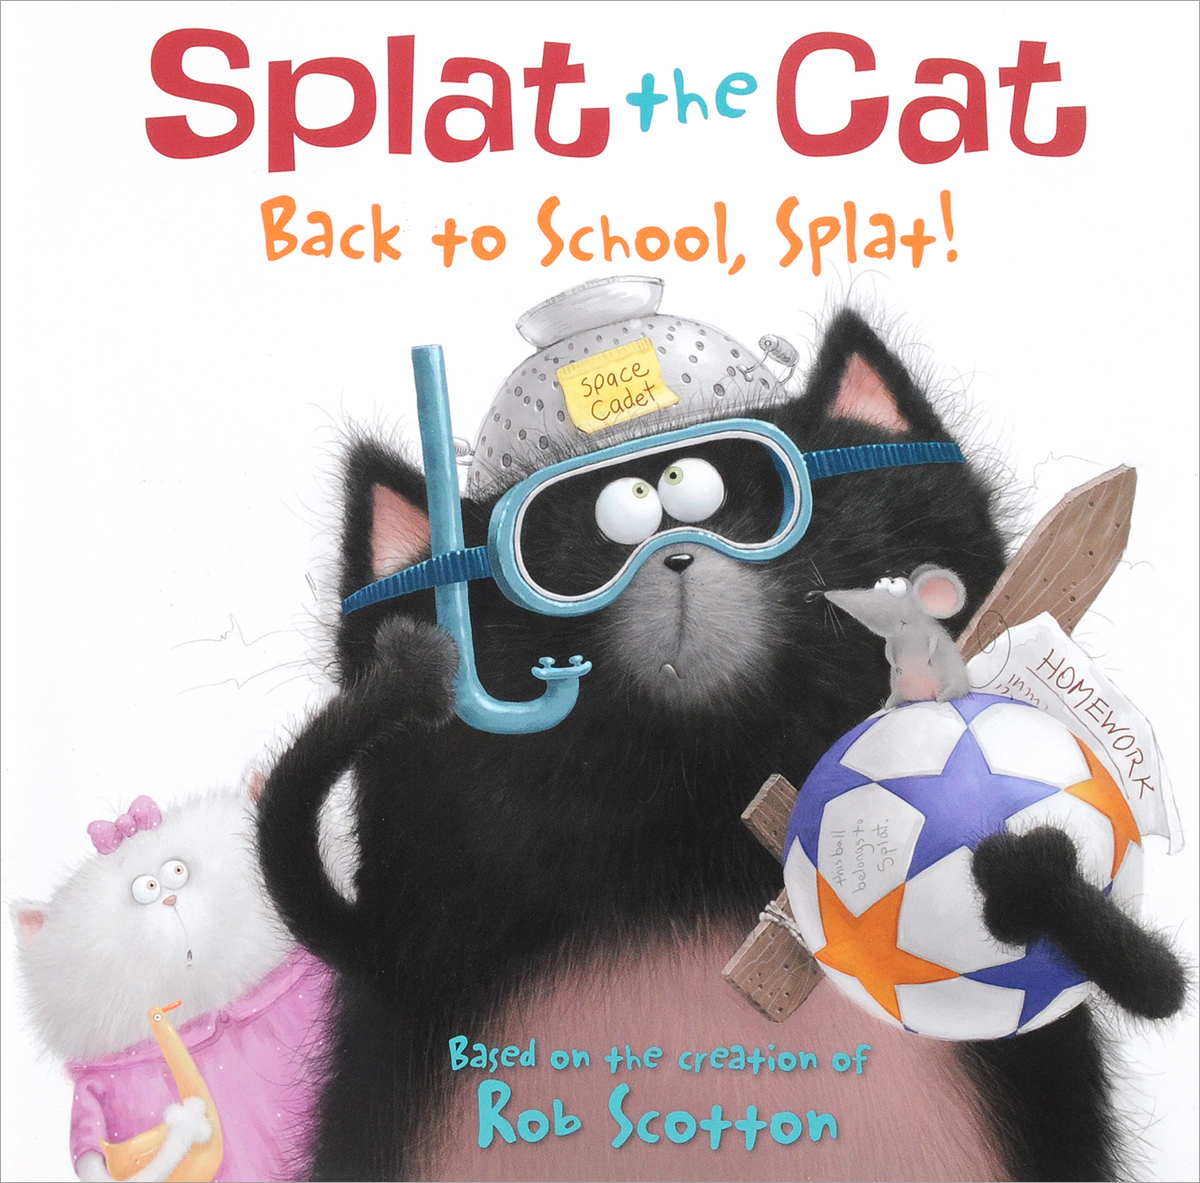 Splat the Cat: Back to School, Splat! one day at a time